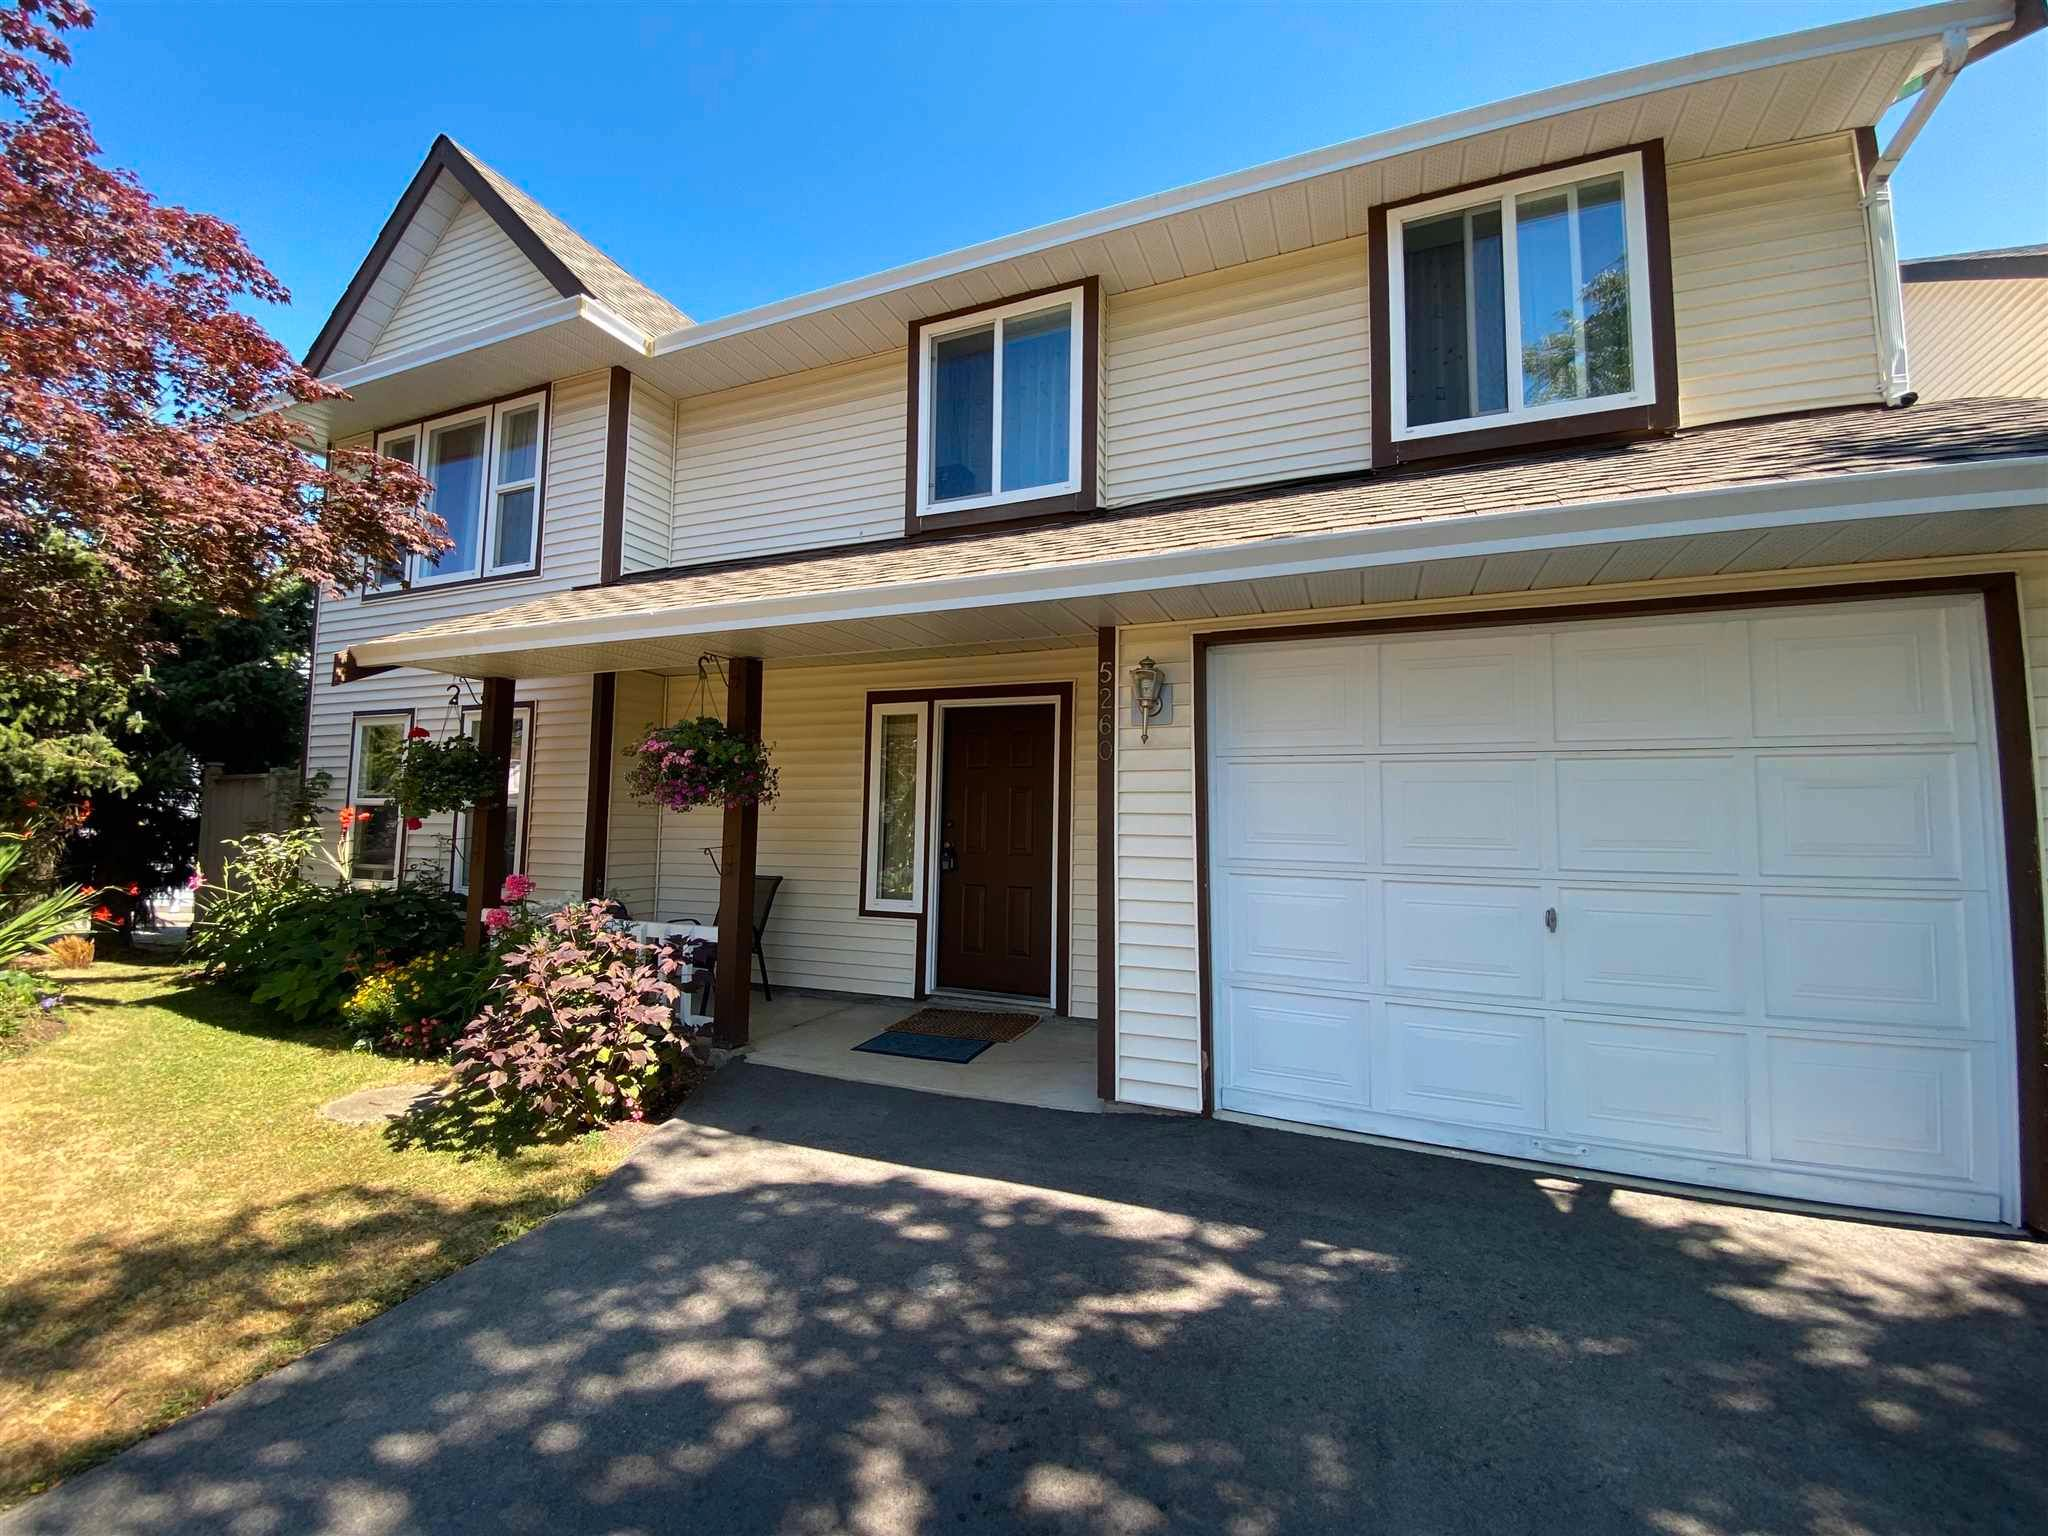 Main Photo: 5260 197A Street in Langley: Langley City House for sale : MLS®# R2604507